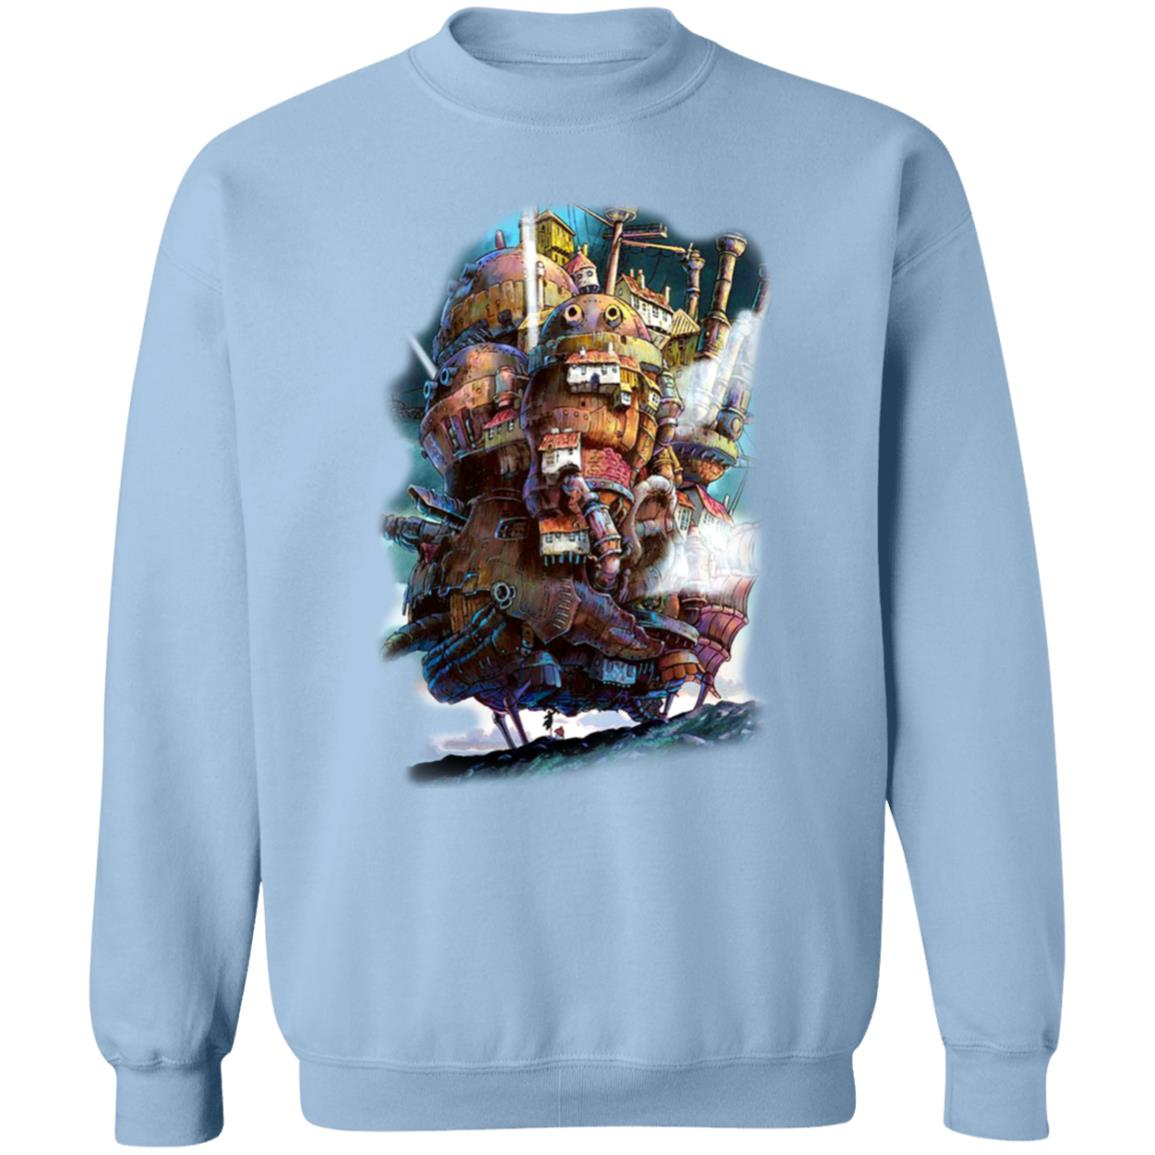 How's Moving Caslte on the Sky Sweatshirt